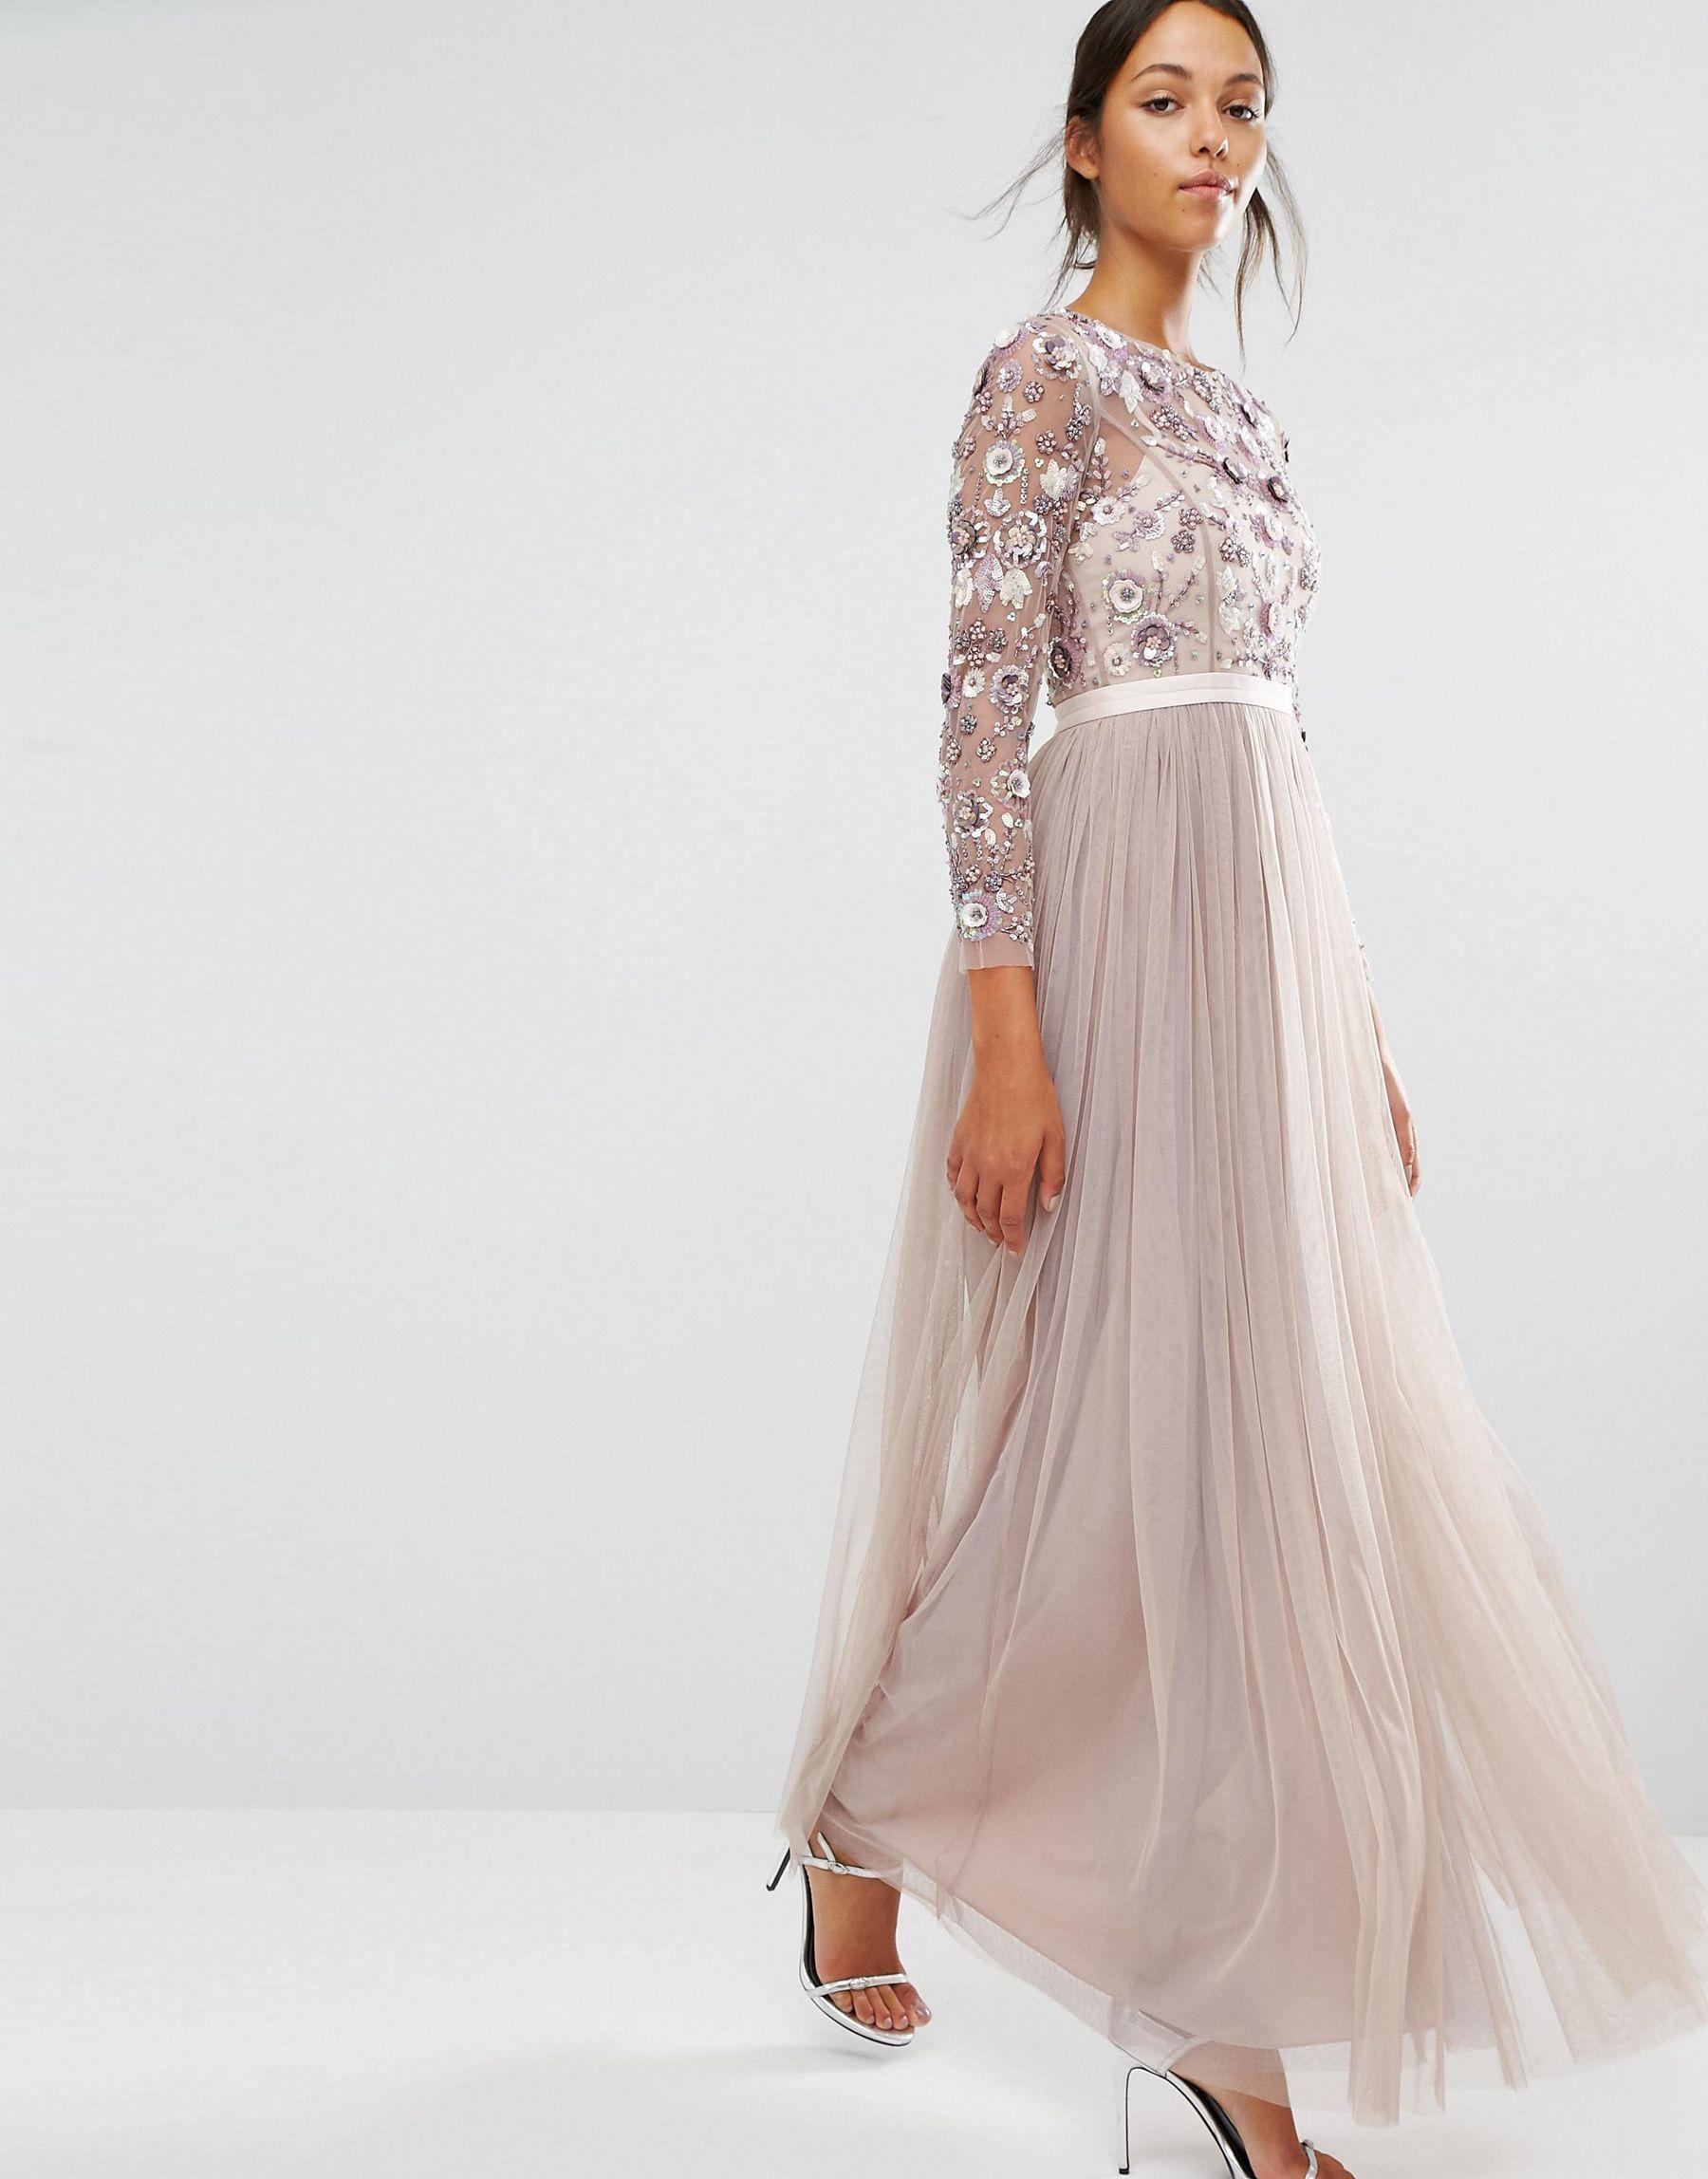 Lyst - Needle & Thread Tulle Floral Embellished Gown in Purple